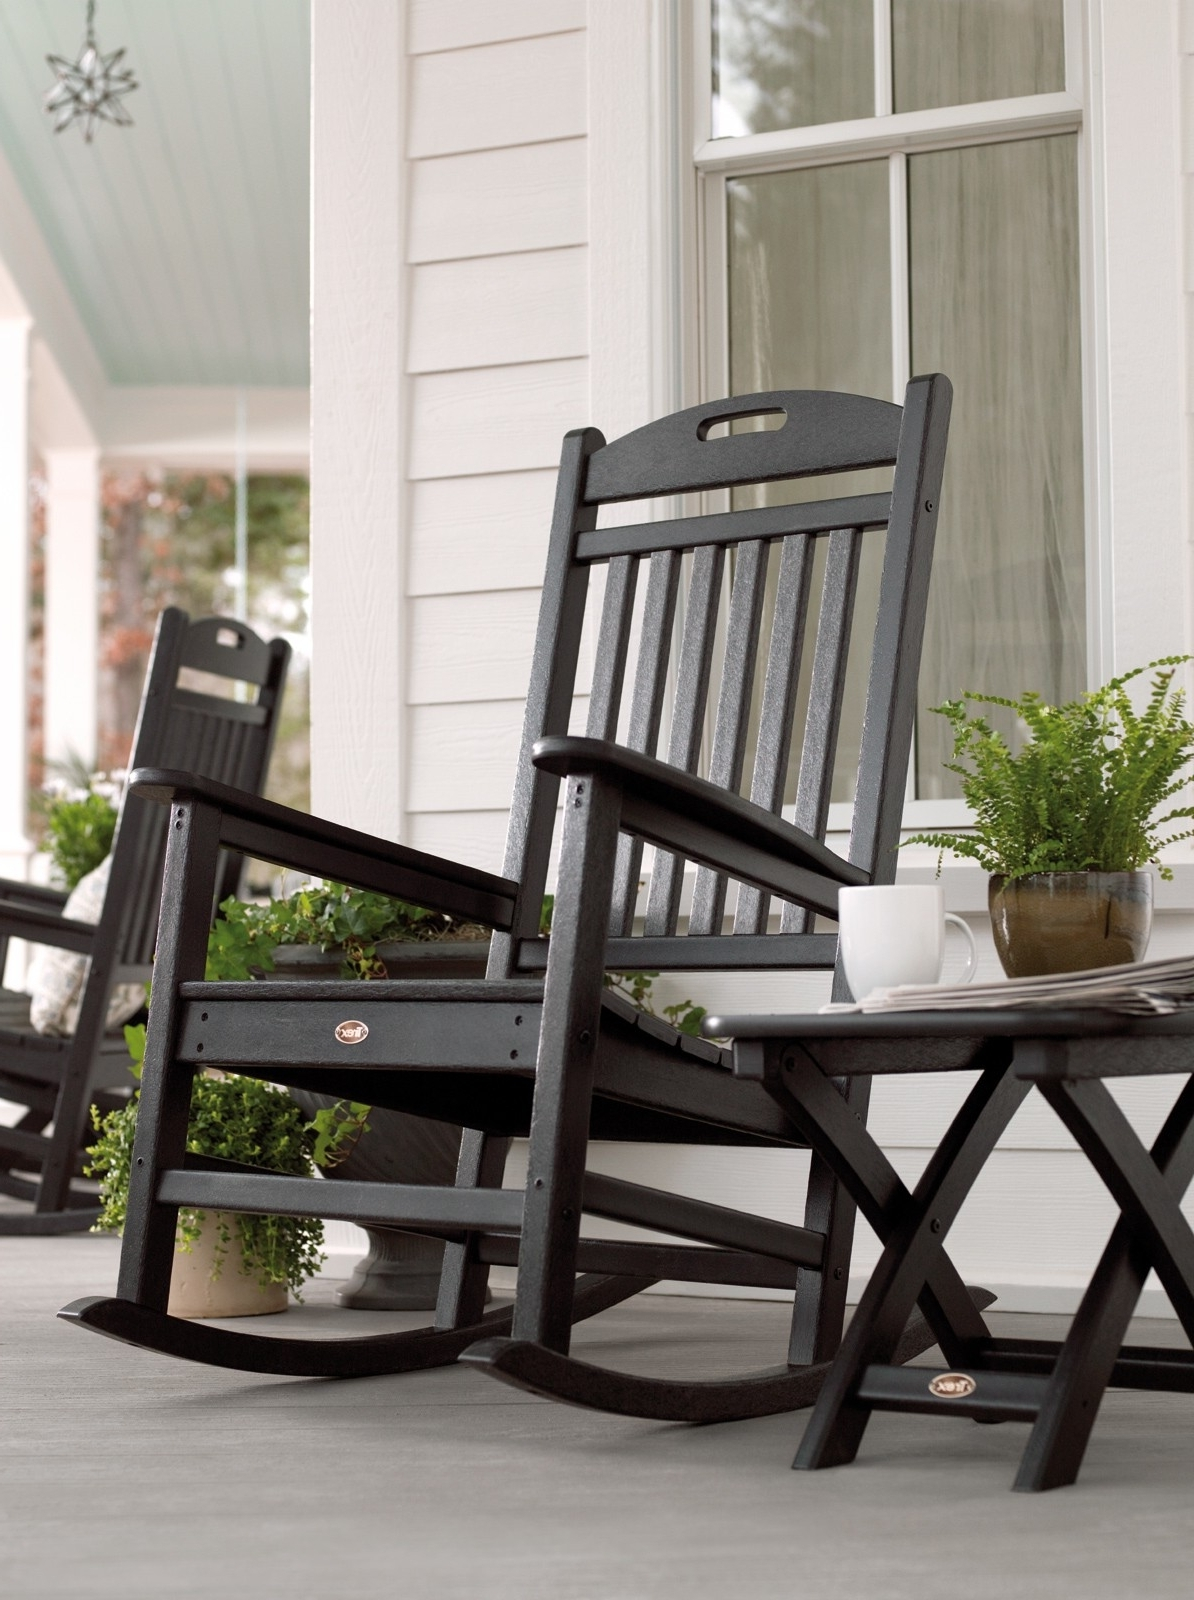 Outdoor Vinyl Rocking Chairs Intended For Widely Used Patio & Garden : Outdoor Rocking Chair Seat Cushions Outdoor Rocking (View 10 of 20)